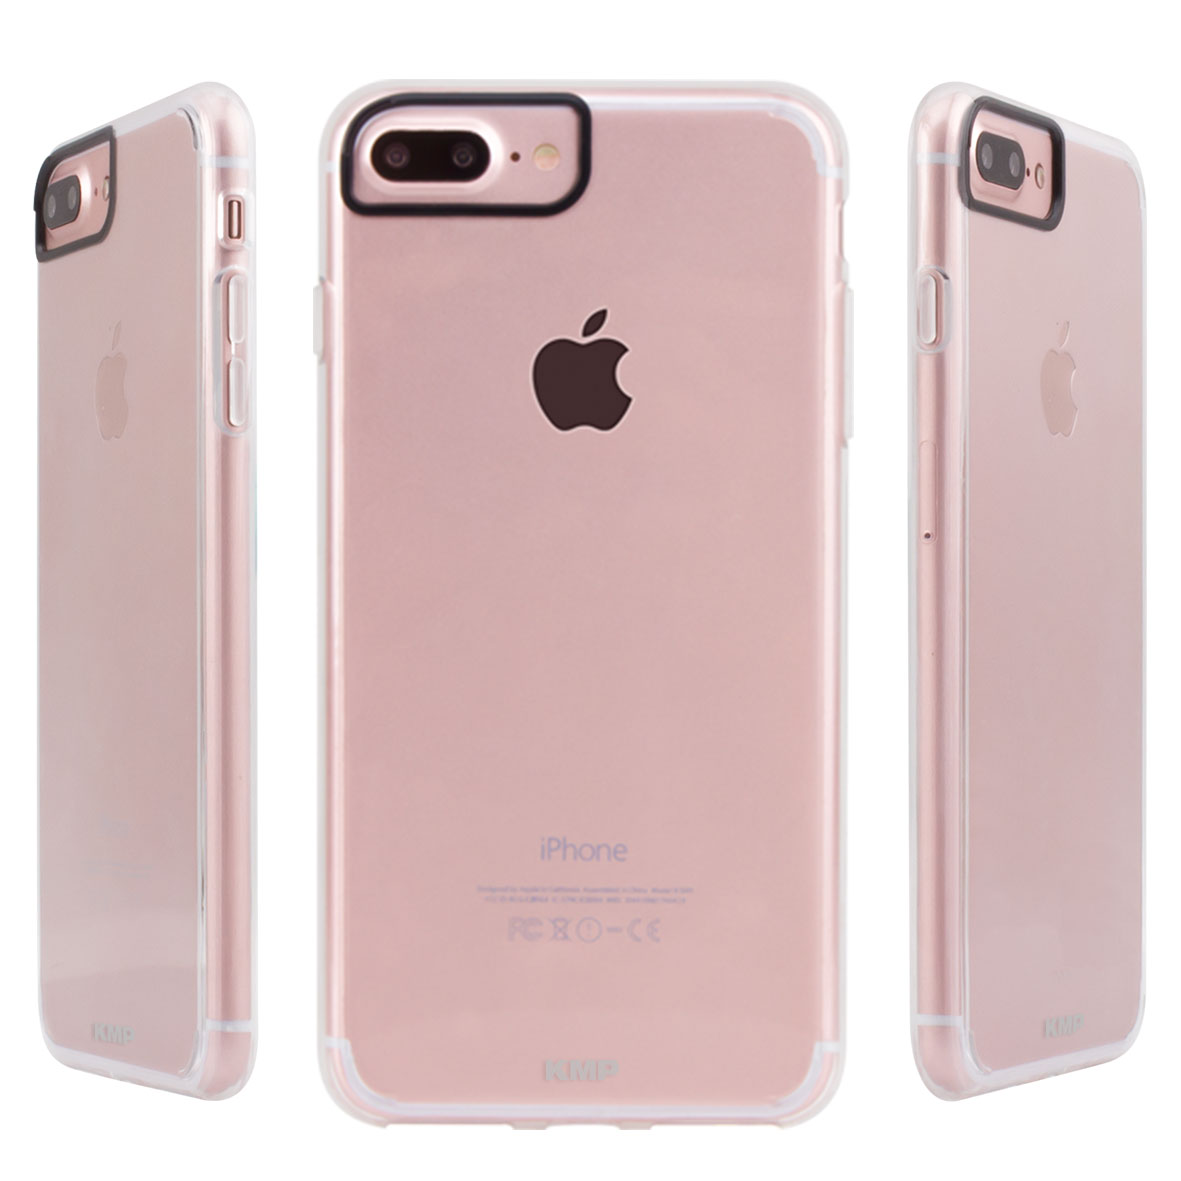 iPhone - Protective Case